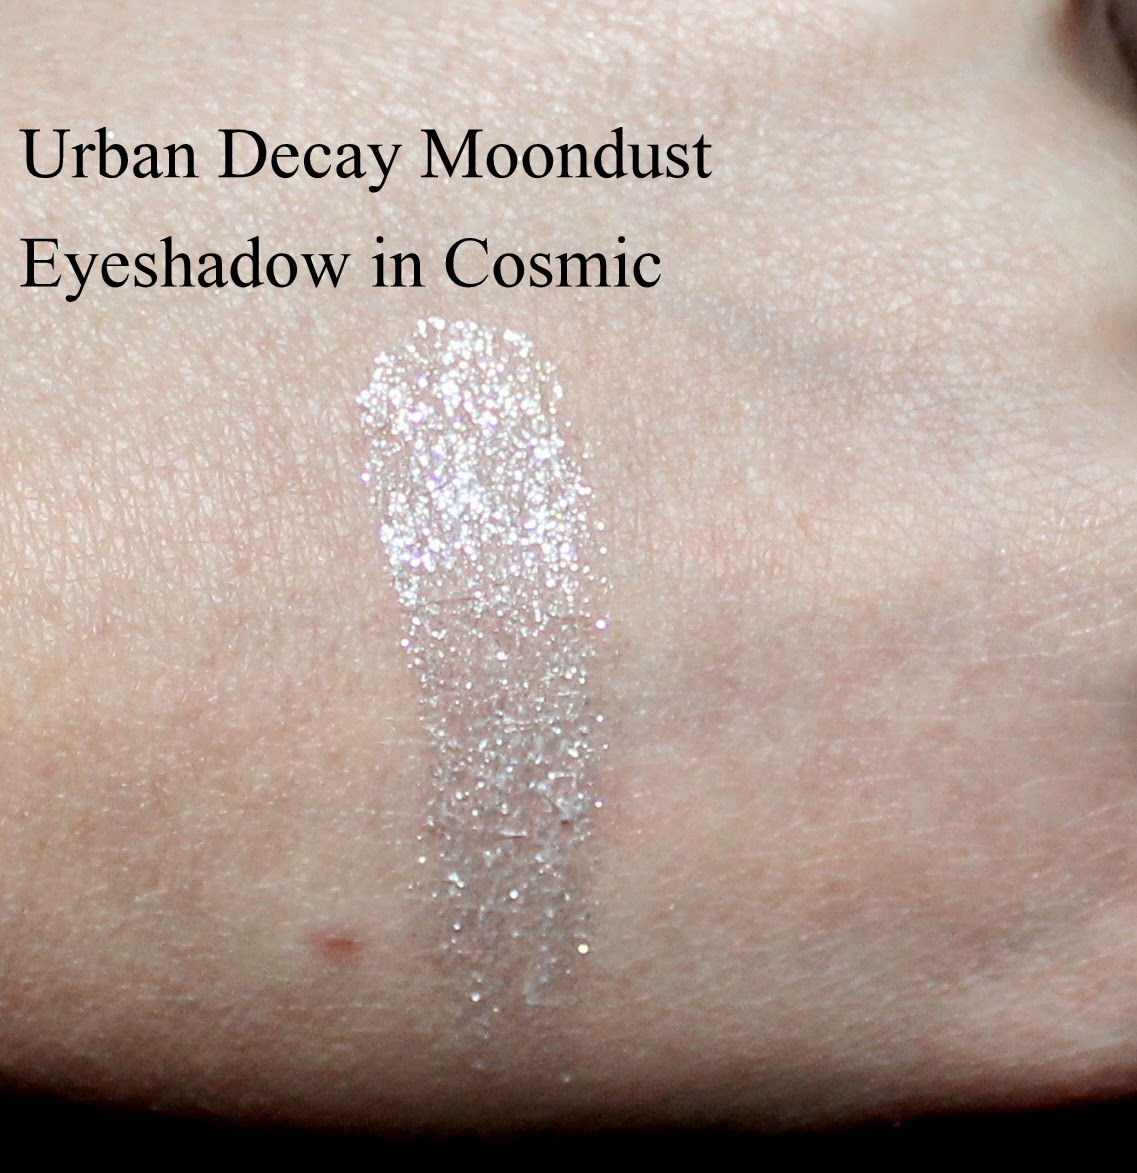 Urban Decay Moondust Eyeshadow in Cosmic